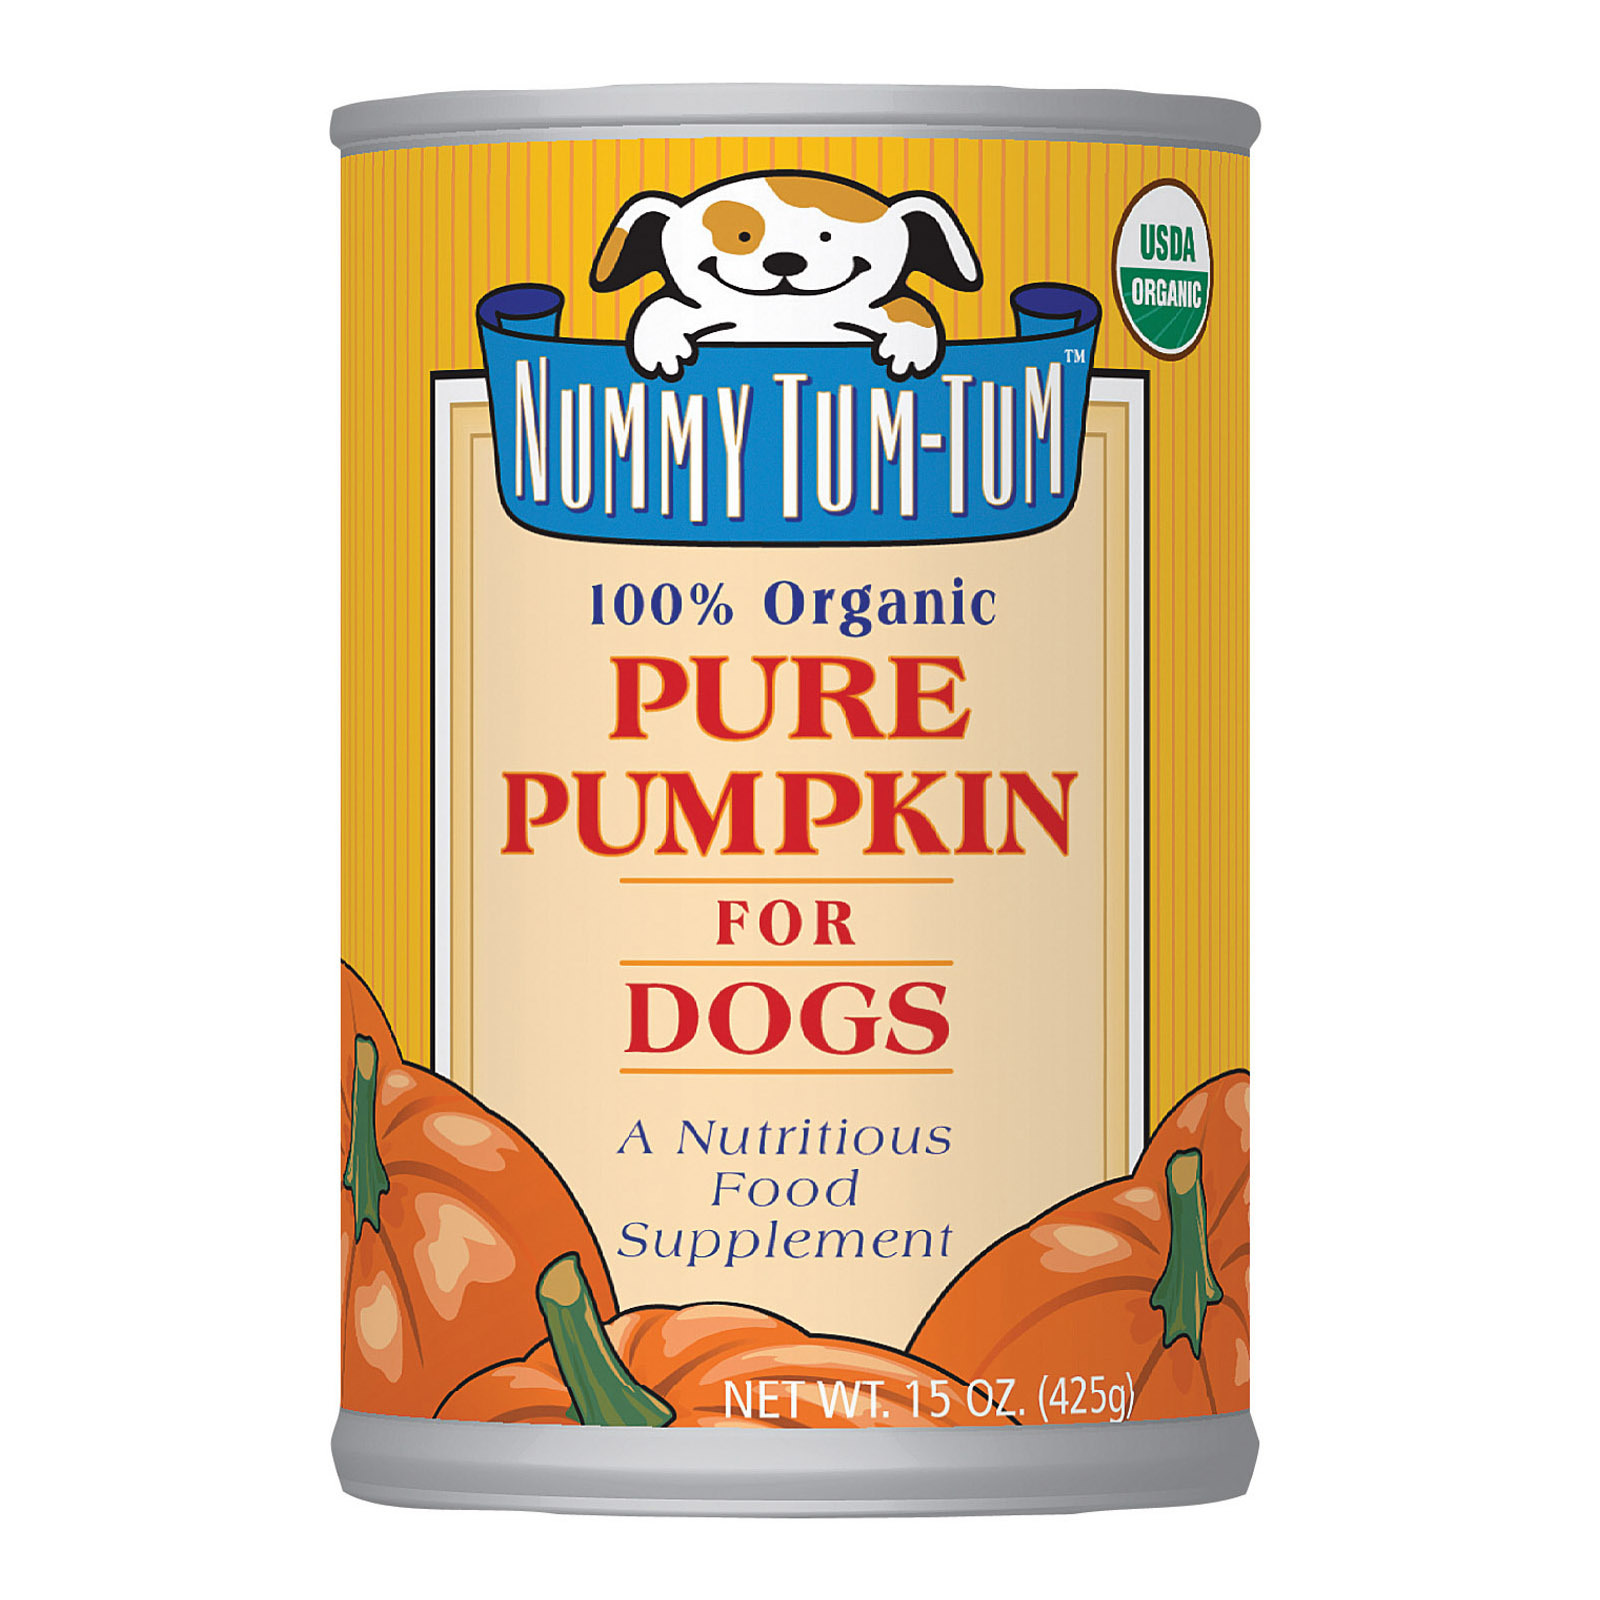 Nummy Tum-Tum Pure Pumpkin - Organic - Case of 12 - 15 oz.